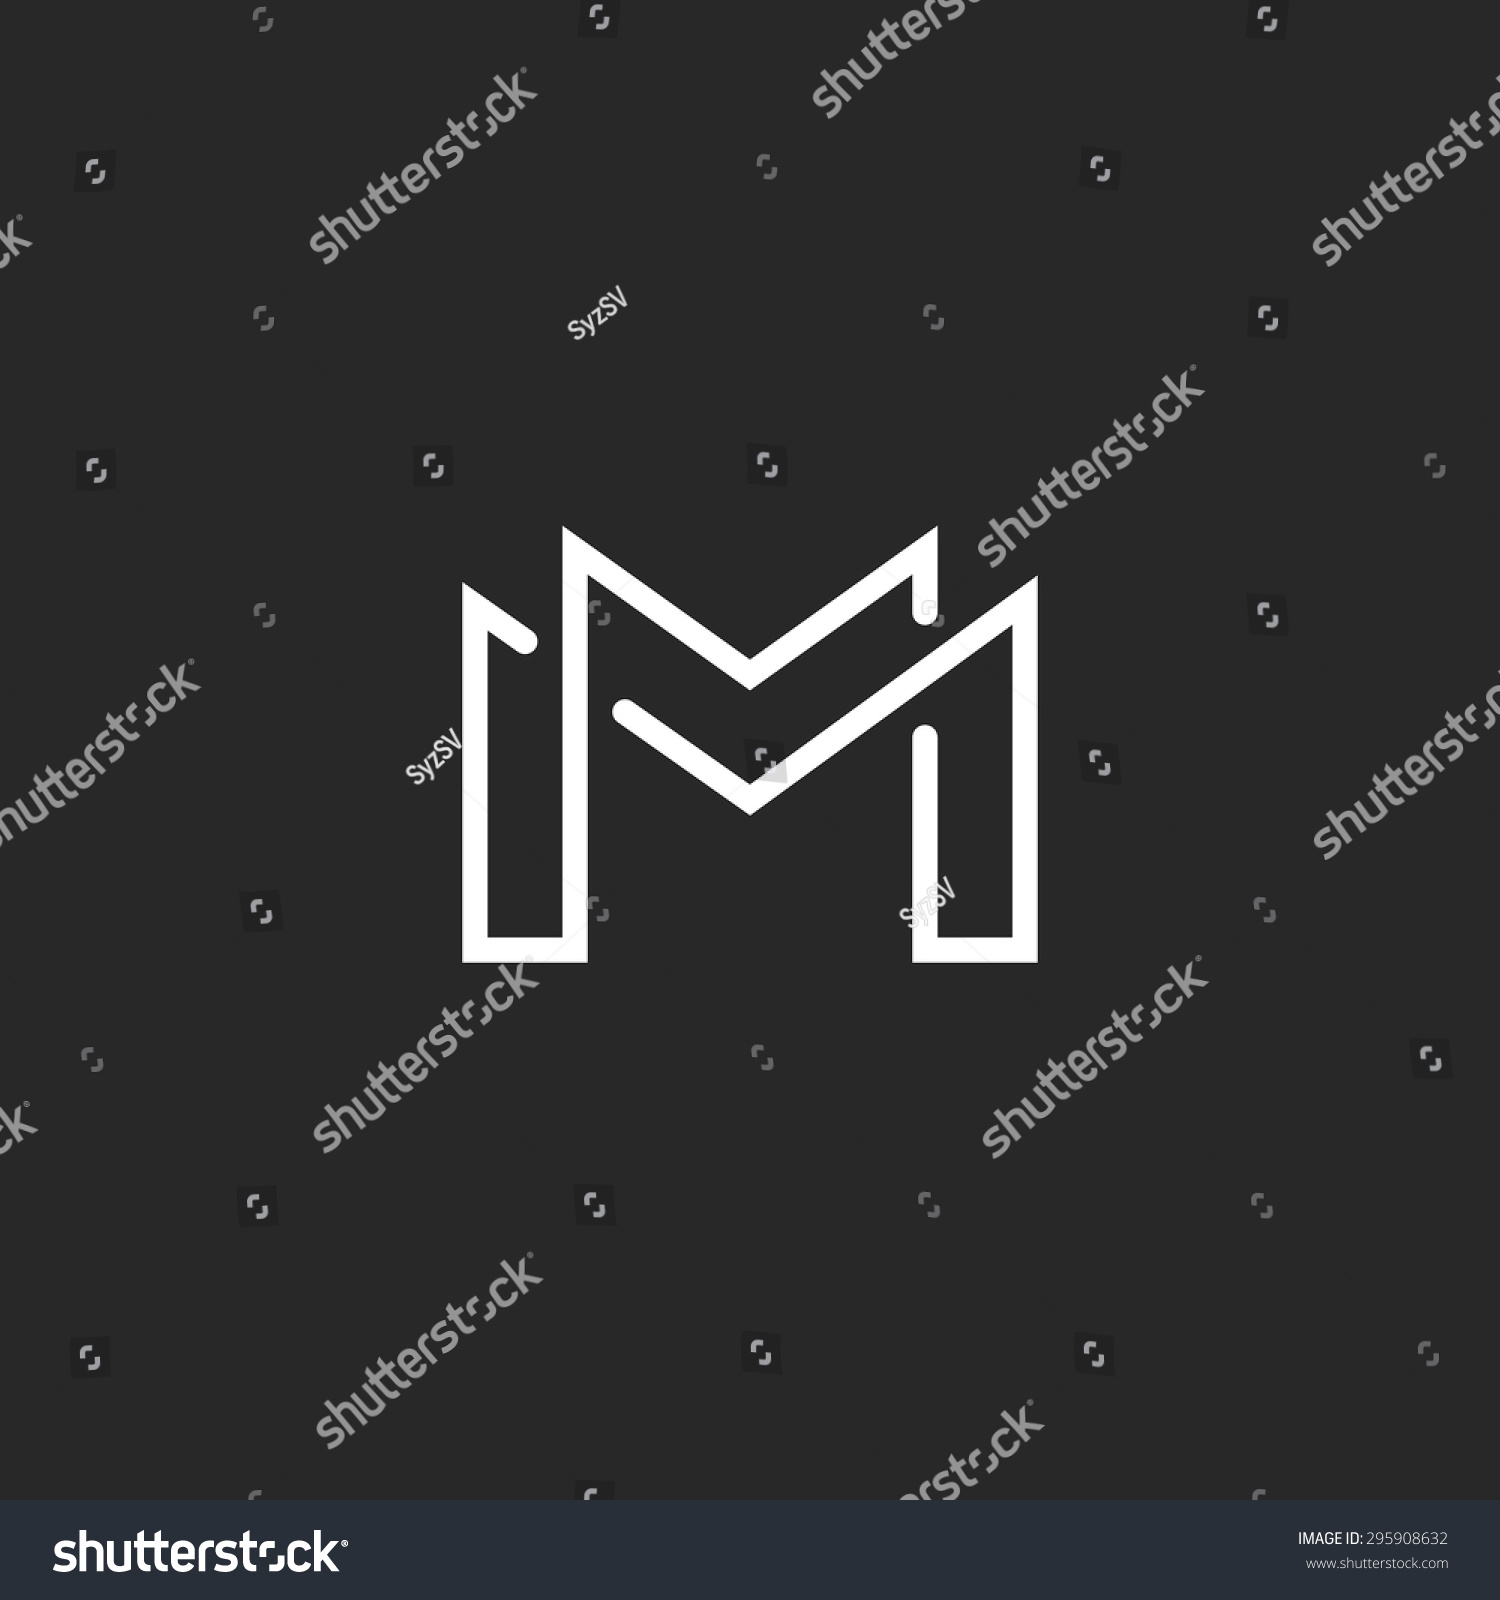 letter m logo stock vector image 63388199 letter m logo or mm initials two modern monogram symbol 822